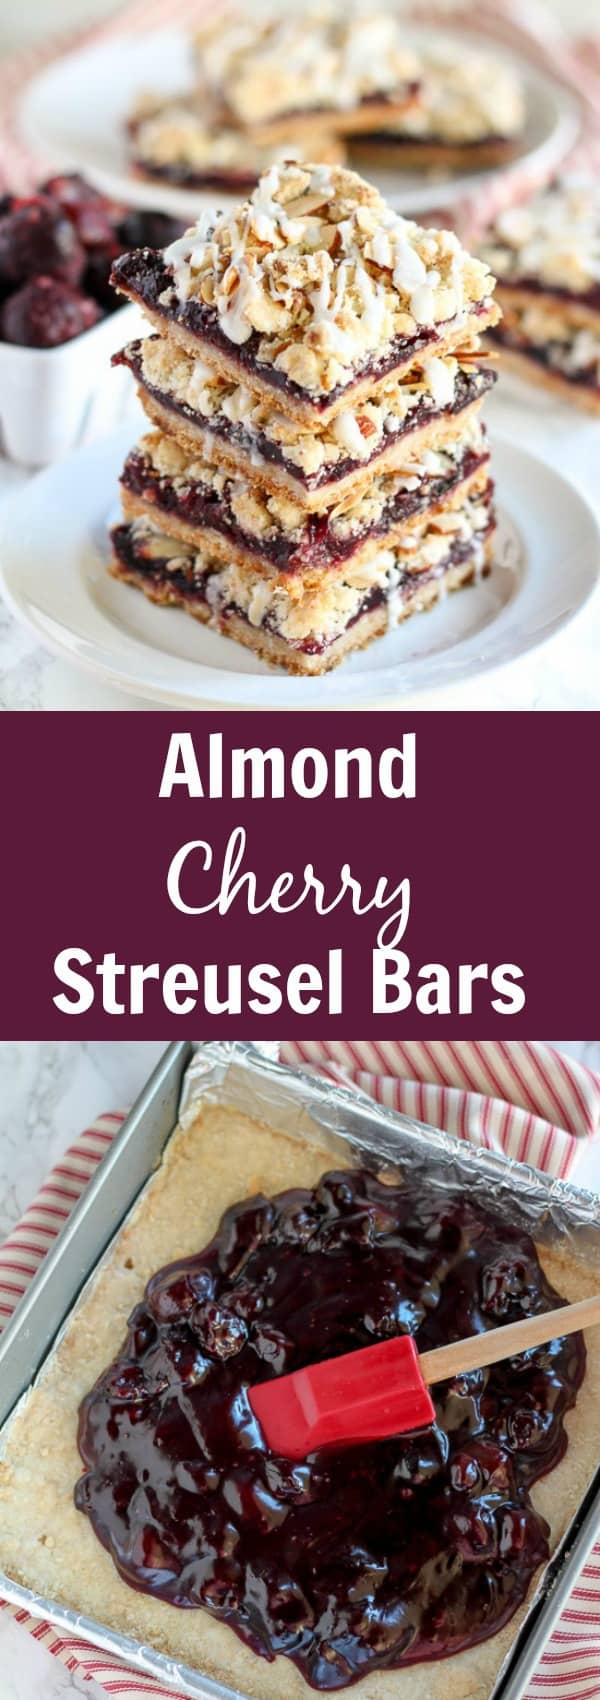 Almond Cherry Streusel Bars - Buttery, crumbly bars with a bold almond flavor and a filling made from sweet cherries. This recipe uses frozen cherries and can be made year round.